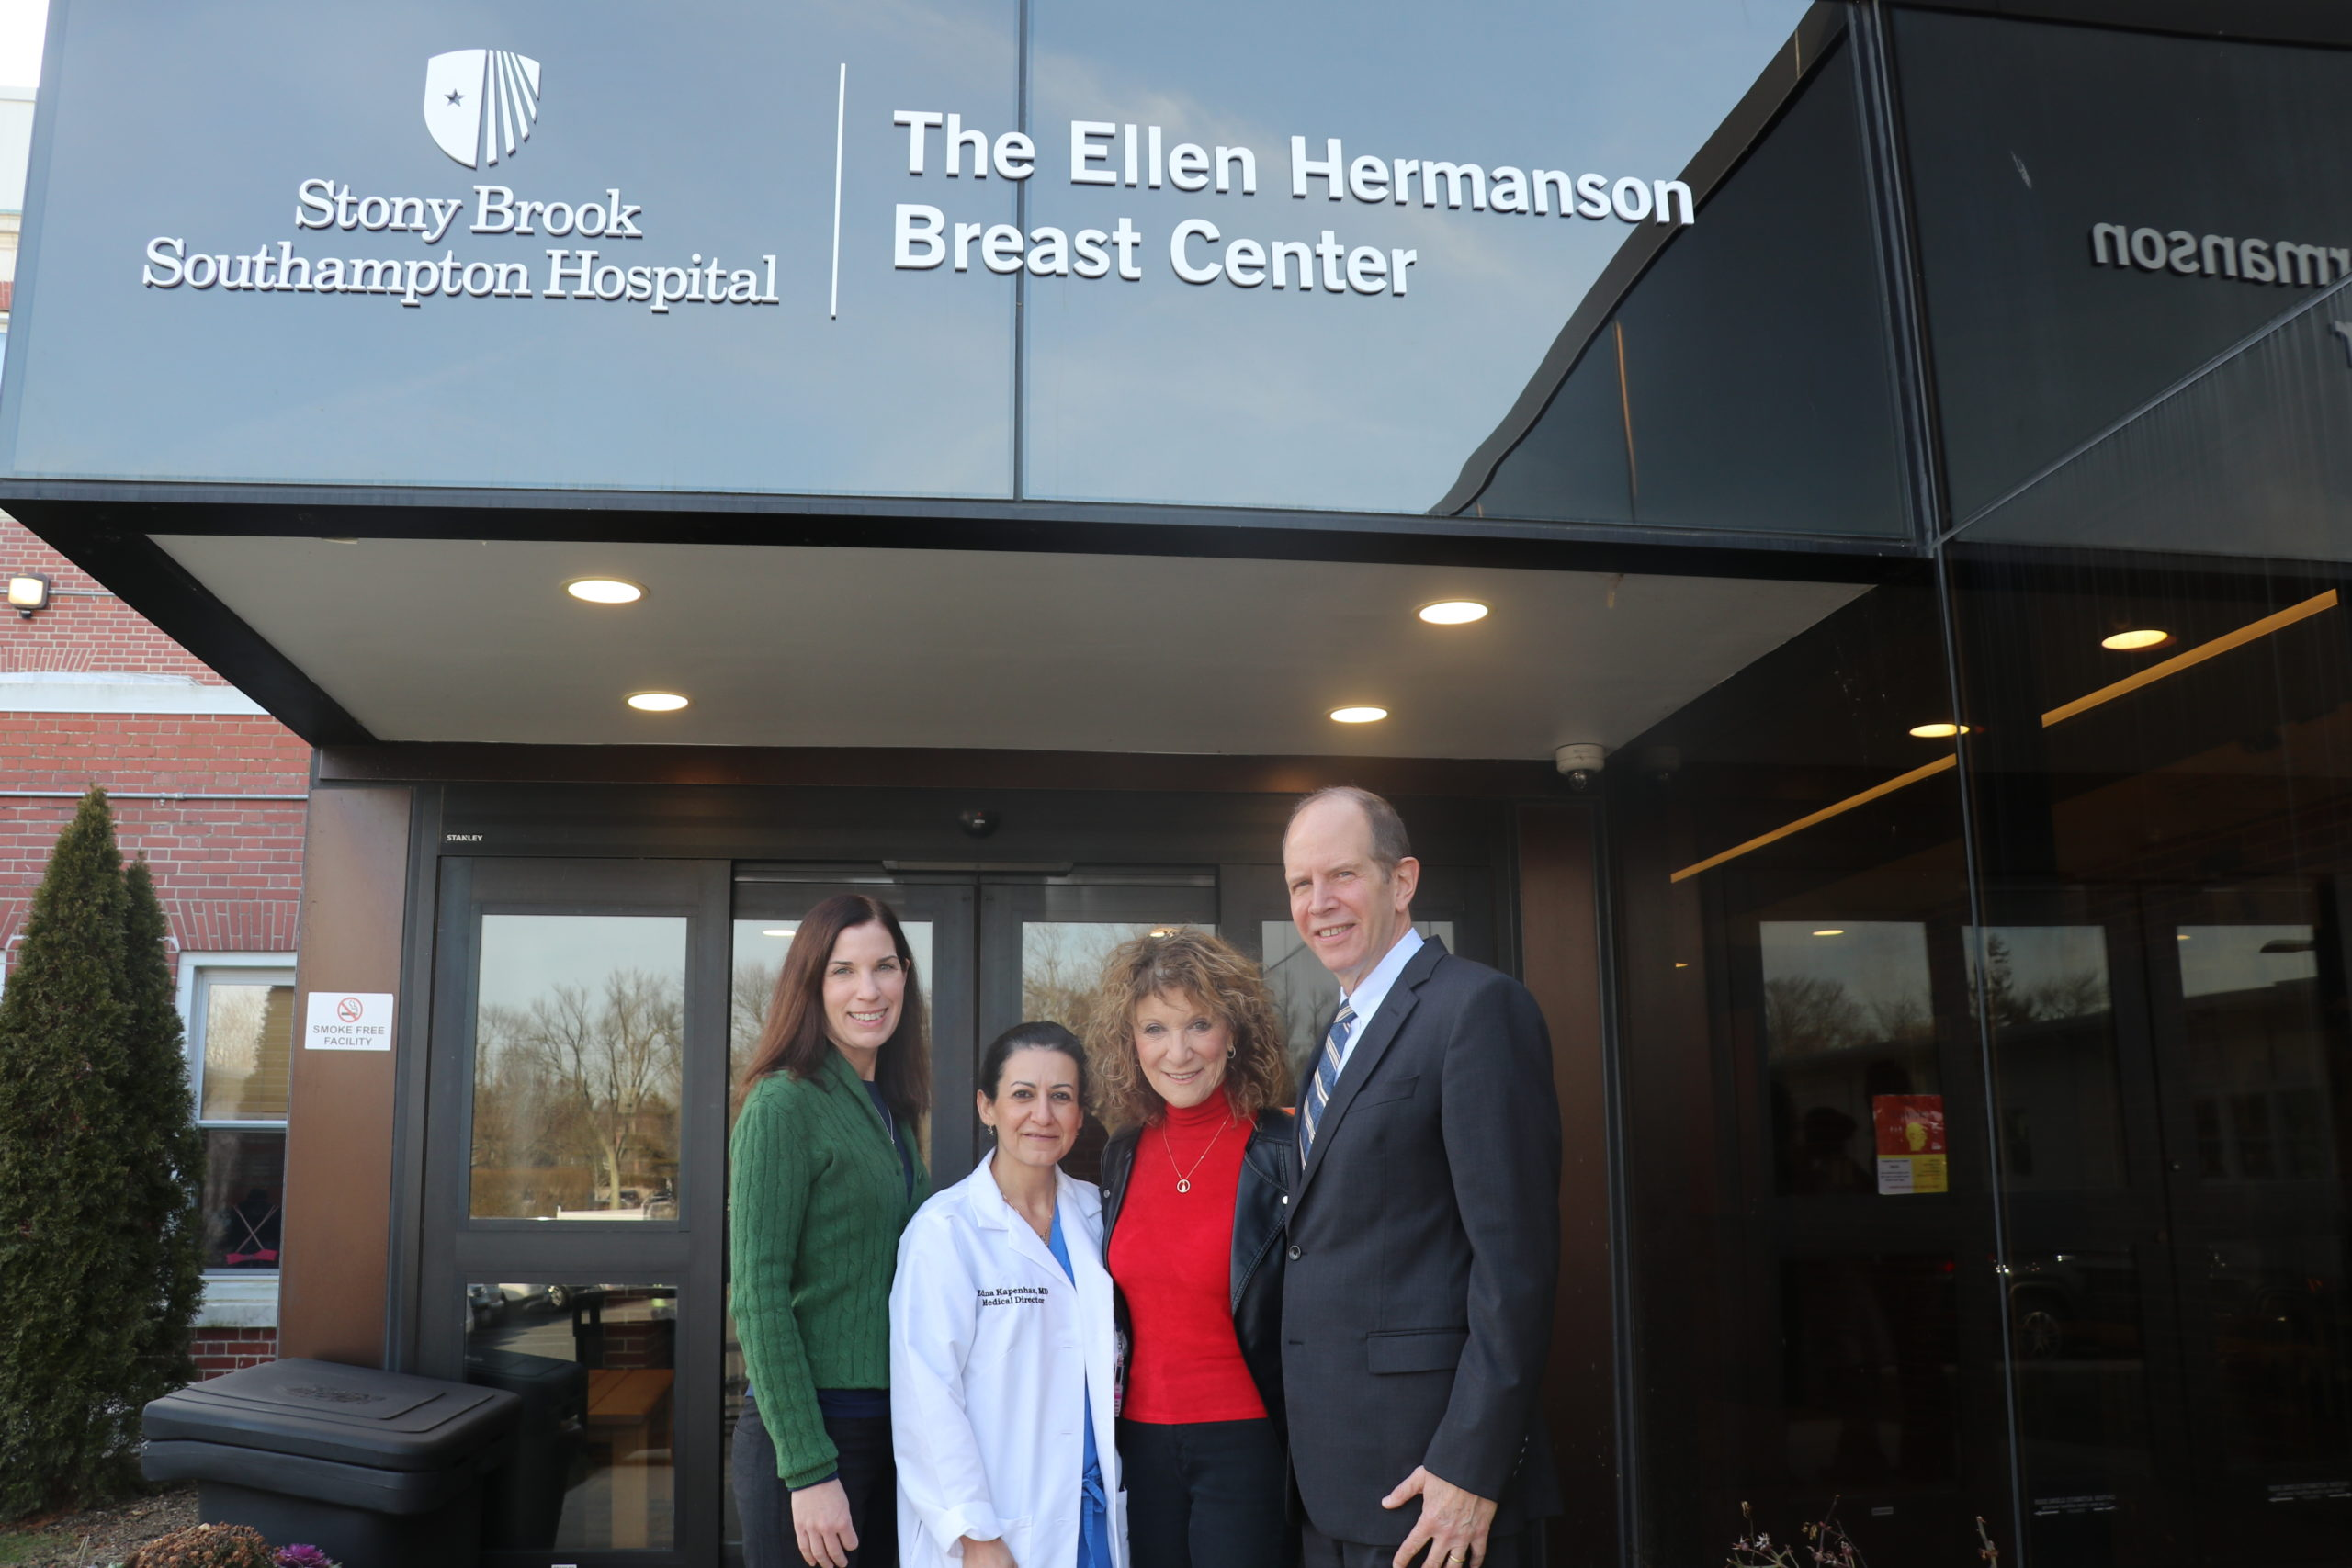 The Ellen Hermanson Foundation recently announced that during 2019, it has awarded $326,000 in grants to Stony Brook Southampton Hospital. From left, Anne Tschida Gomberg, executive director, The Ellen Hermanson Foundation; Edna Kapenhas, MD, director of Breast Surgery and medical director of The Ellen Hermanson Breast Center at Stony Brook Southampton Hospital; Julie Ratner, co-founder and chairwoman of The Ellen Hermanson Foundation; and Robert Chaloner, chief administrative officer, Stony Brook Southampton Hospital.